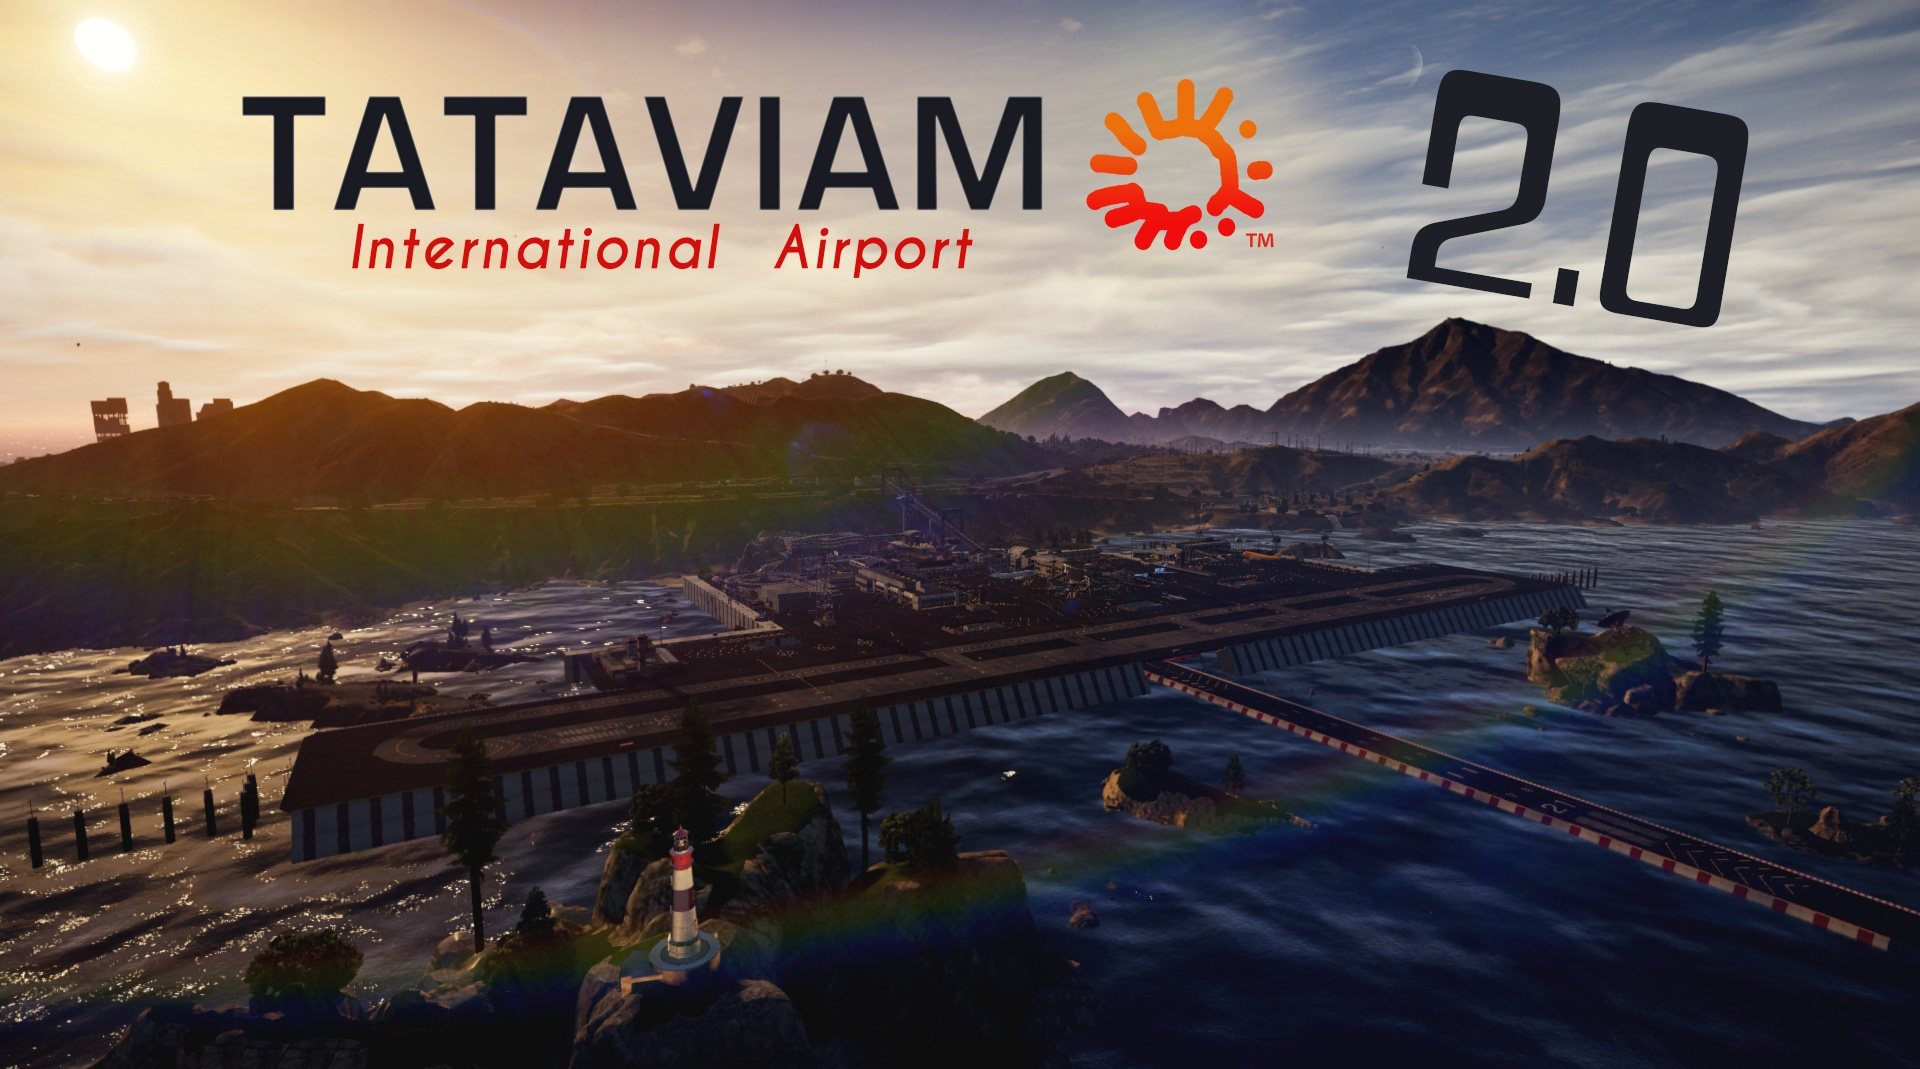 Tataviam International Airport 2.0